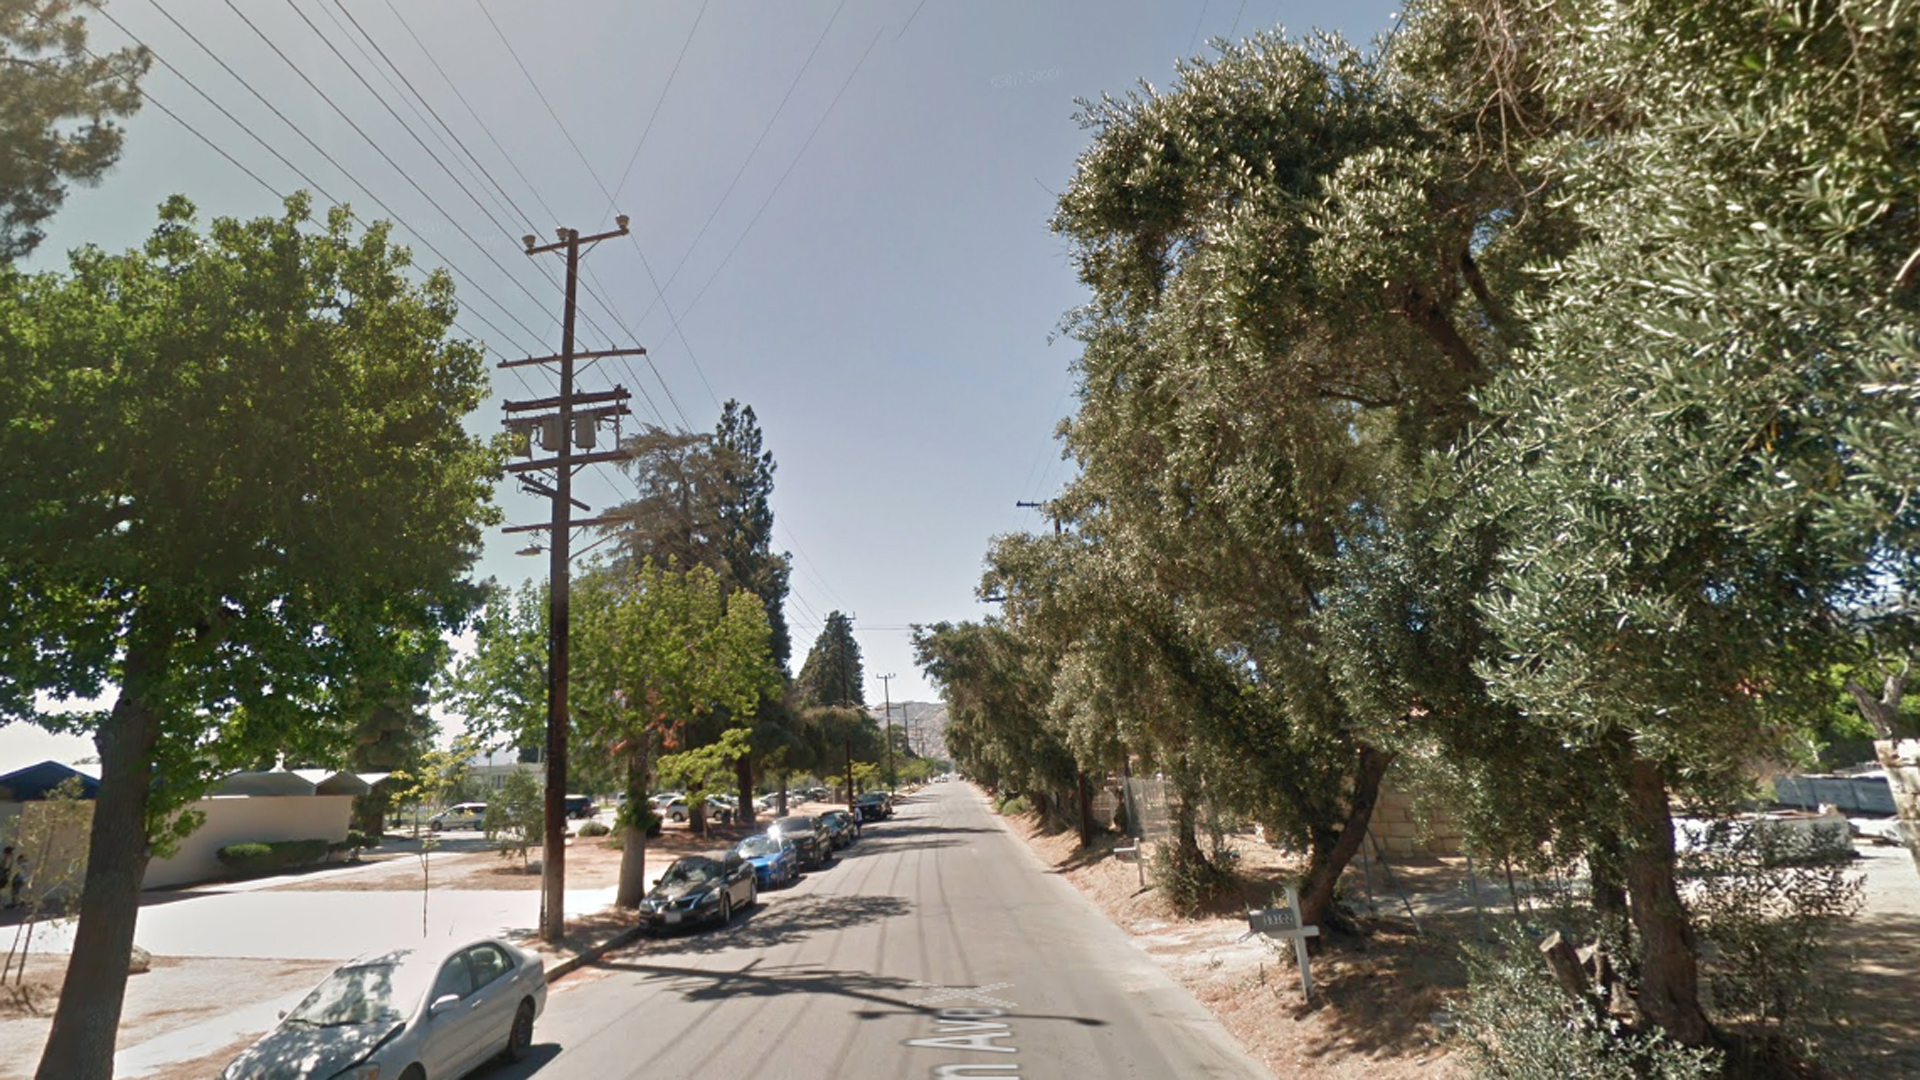 The 13100 block of Borden Avenue in Sylmar, where a person was shot to death on May 28, 2018, is seen here. (Credit: Google Maps)